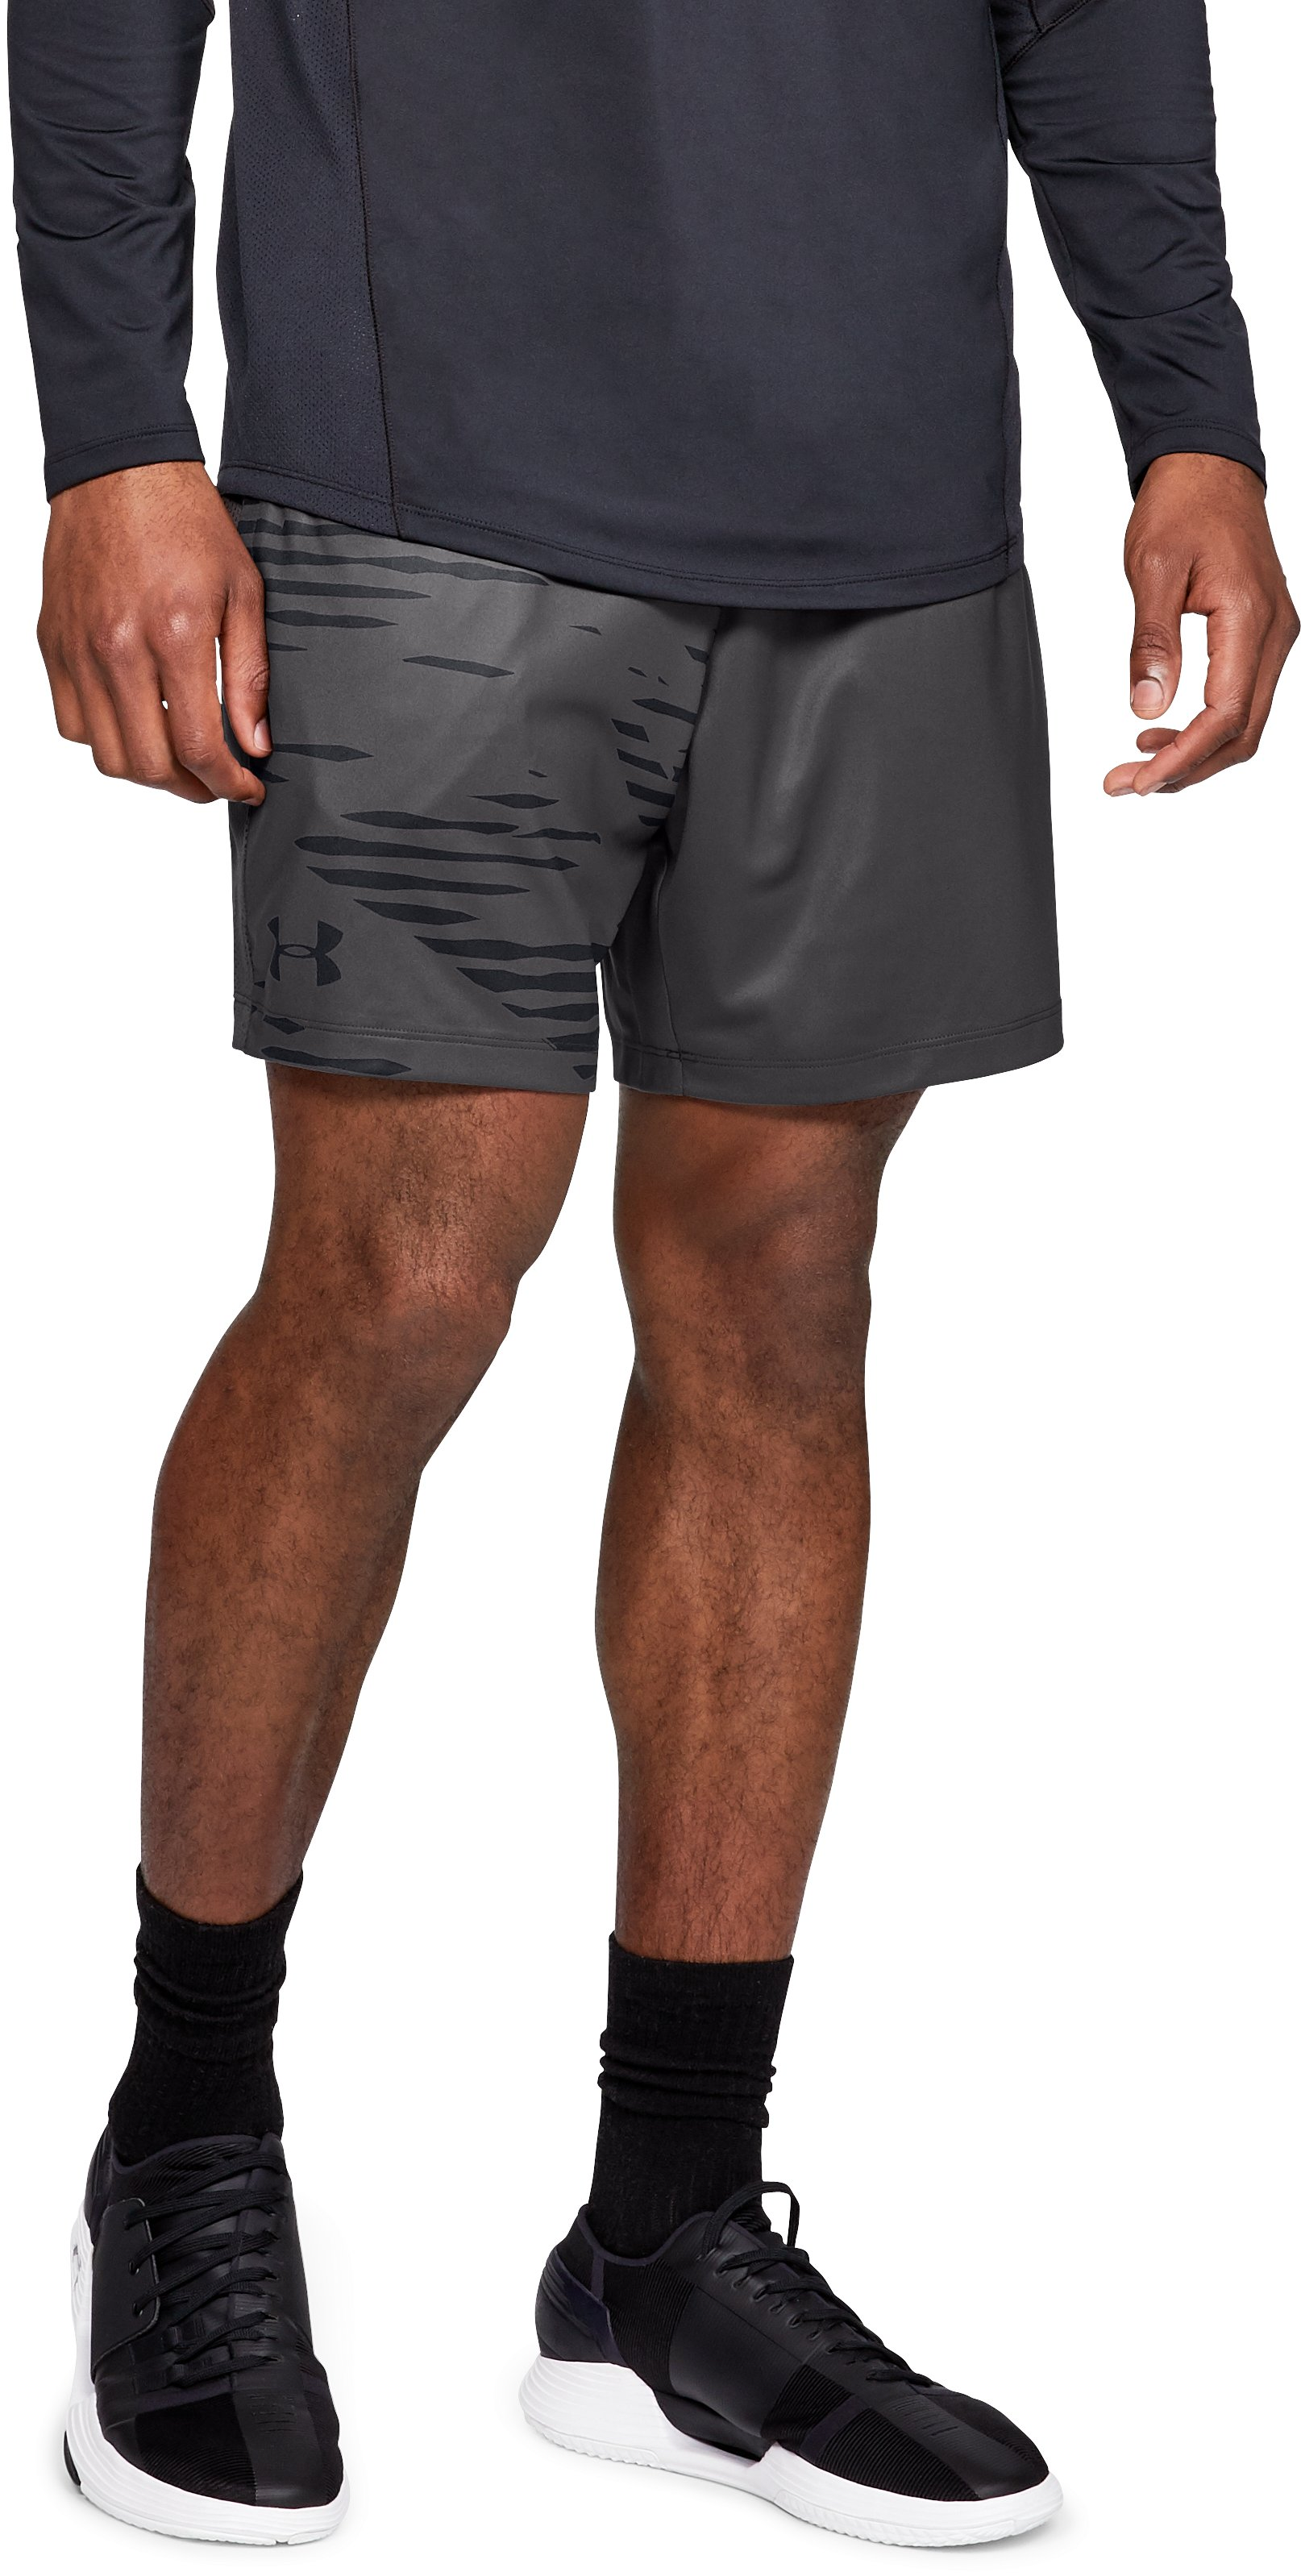 guys camo shorts Men's UA MK-1 Camo Print Shorts Shorts have been pretty comfortable in the gym and while running.